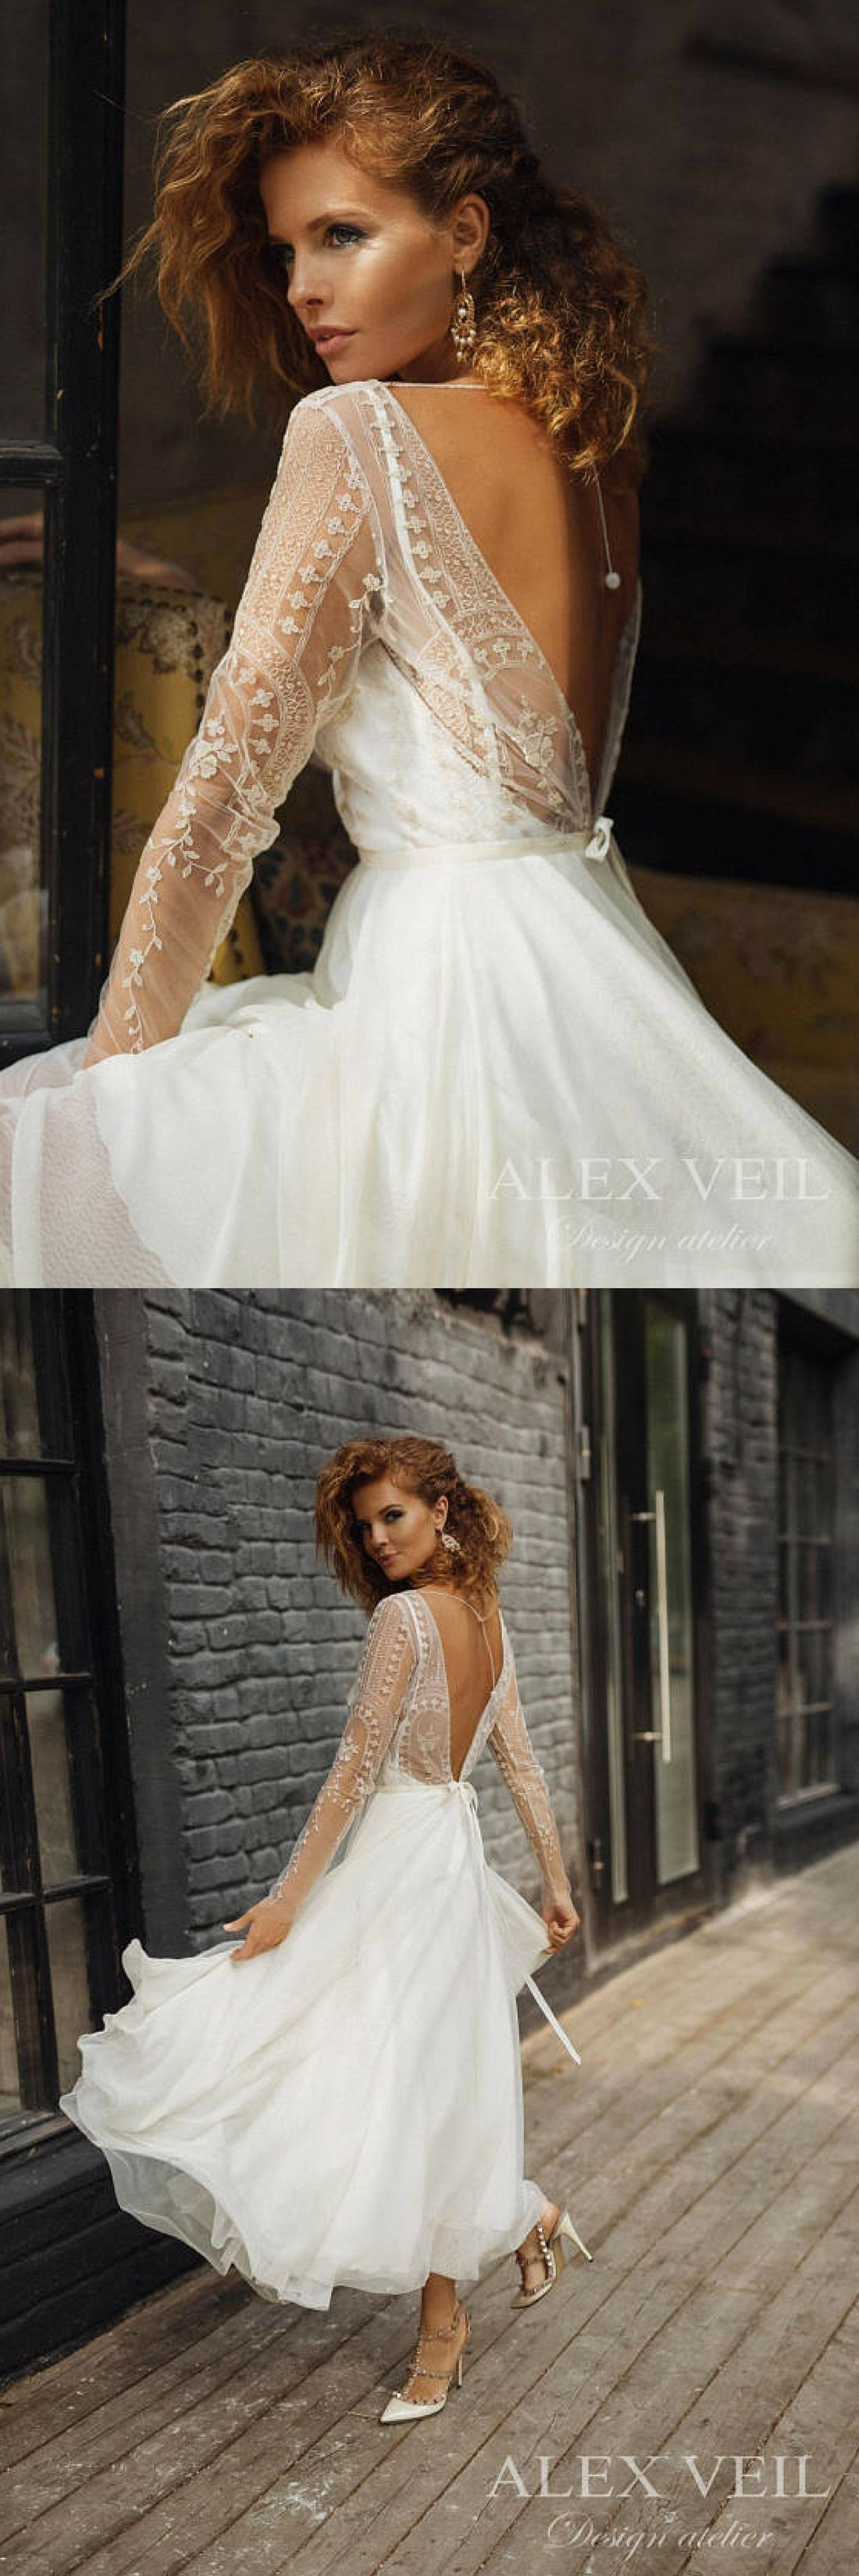 Wedding dress ueliseu short wedding dress boneless tea length